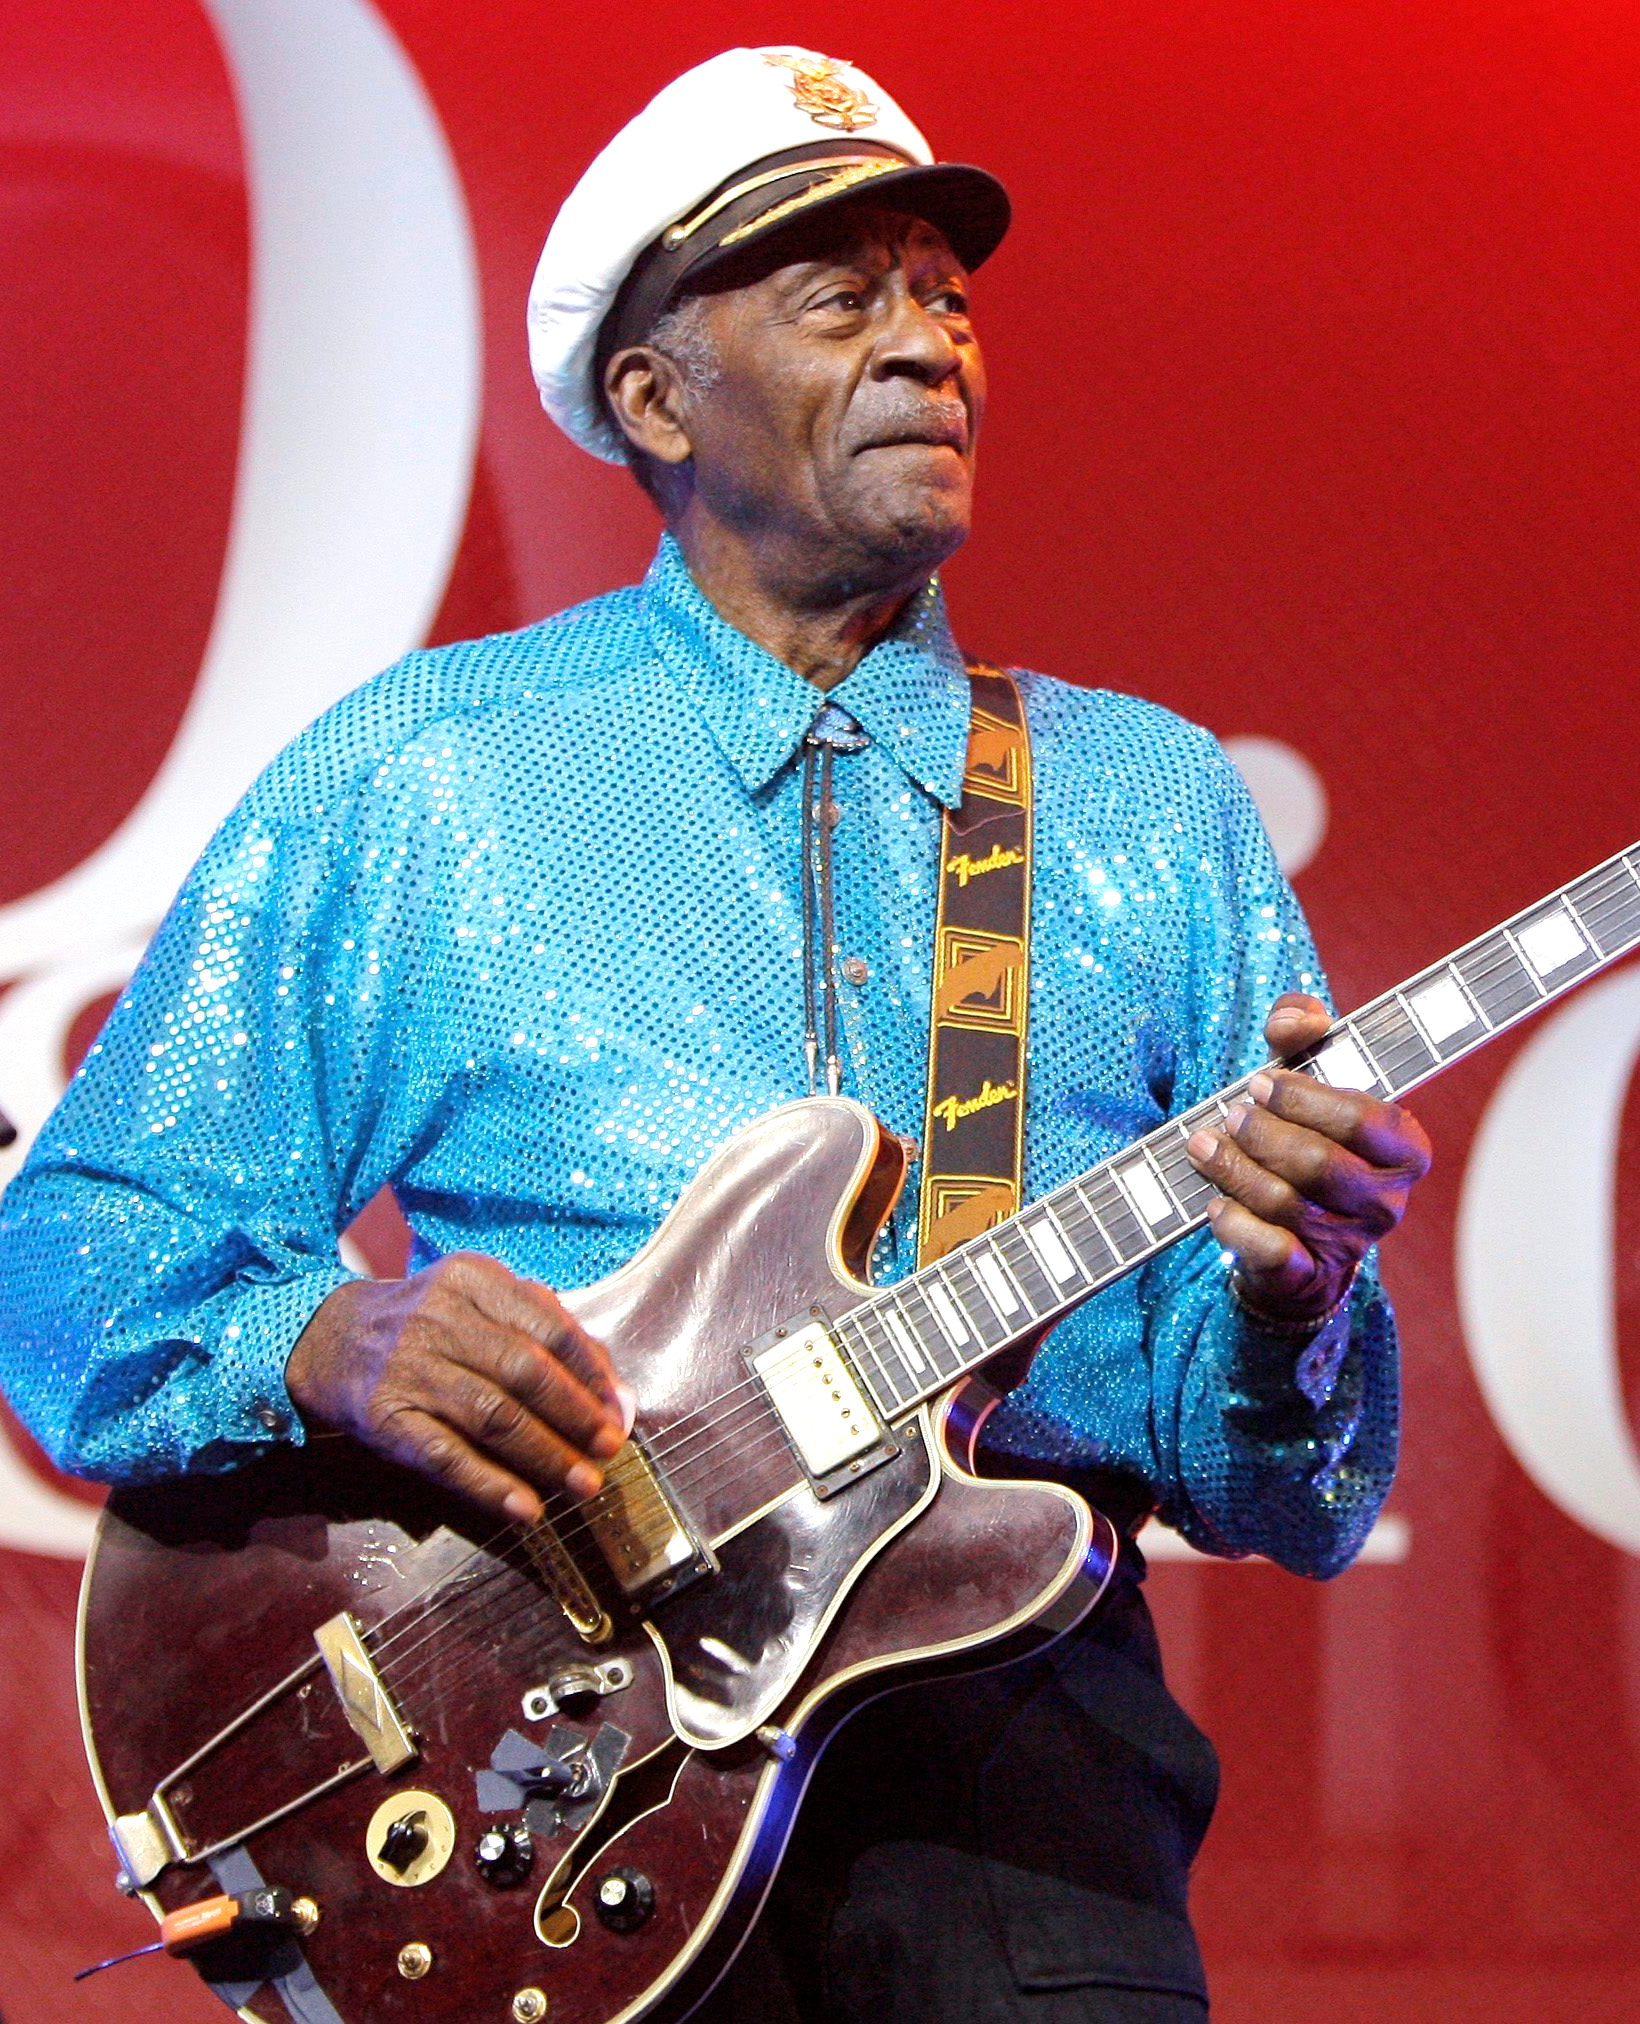 Legendary U.S. musician Chuck Berry is shown in this Nov. 13, 2007 file photo. (Peter Klaunzer/Keystone via AP)